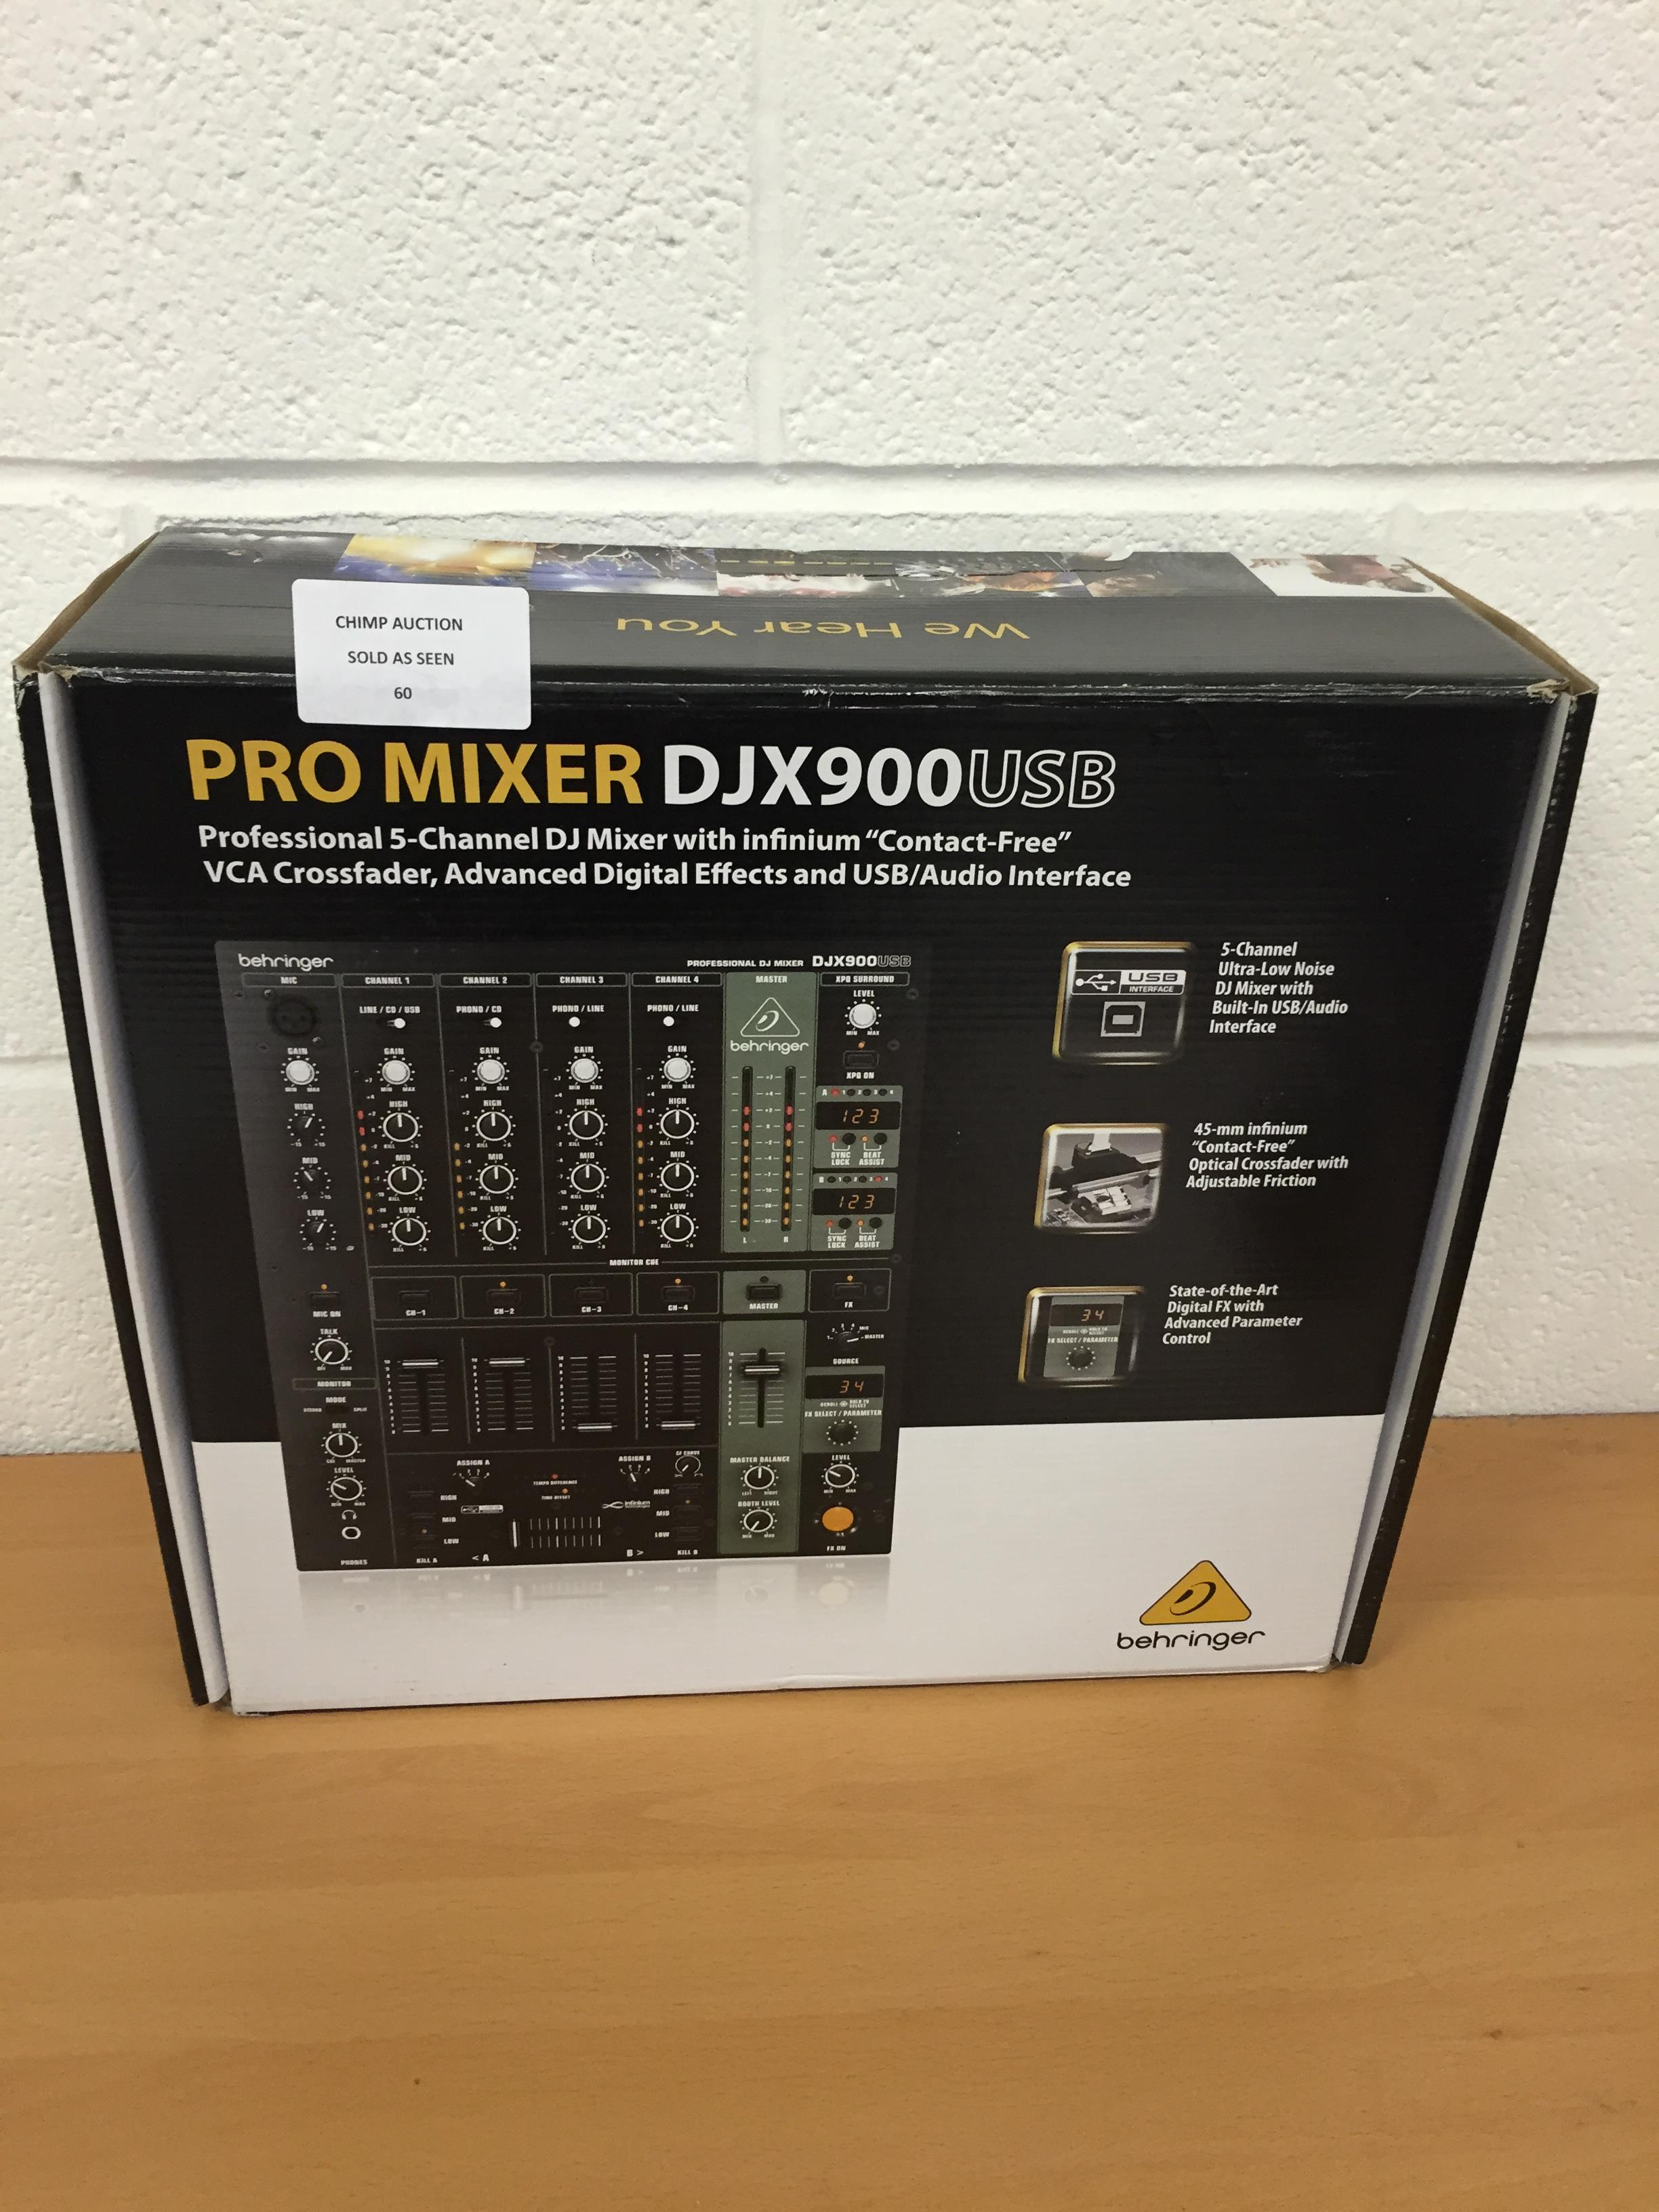 Lot 60 - Behringer DJX900USB 5 Channel DJ Pro Mixer RRP £239.99